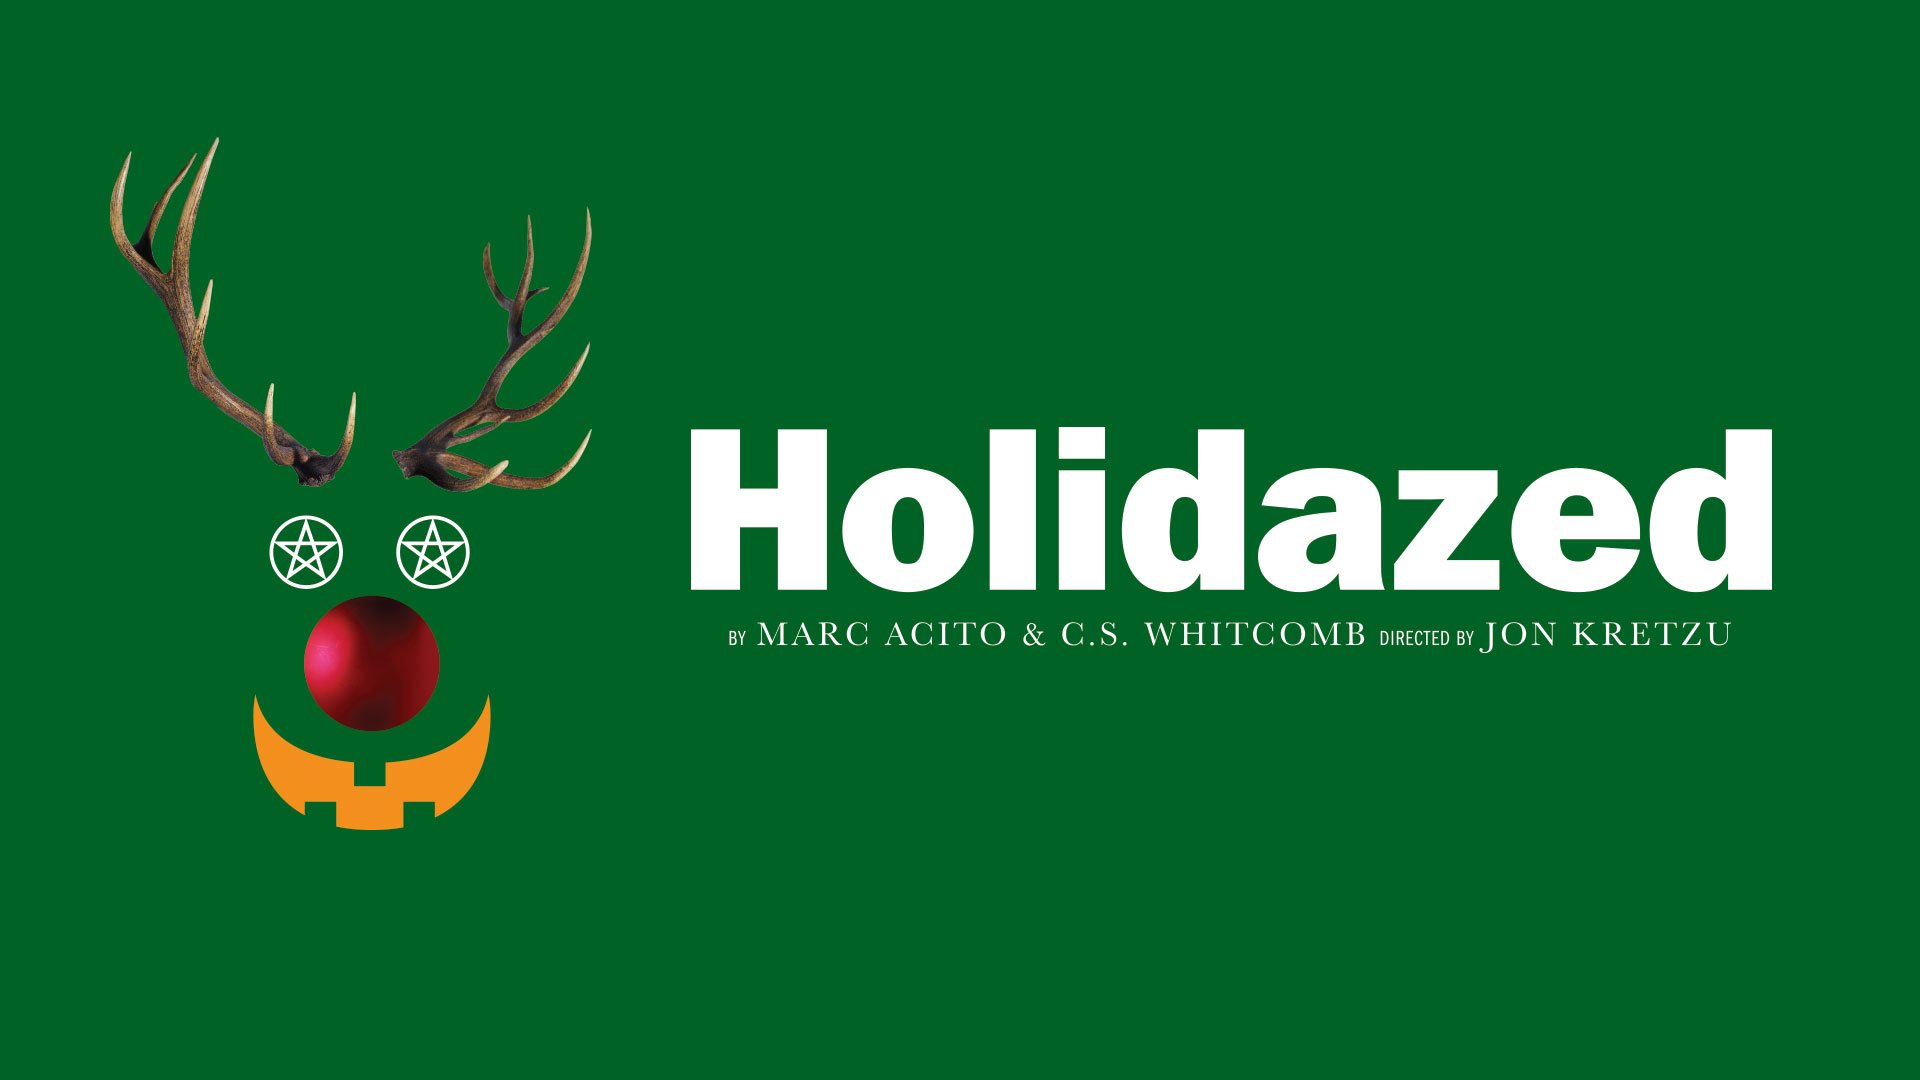 holidazed-showimage.jpg